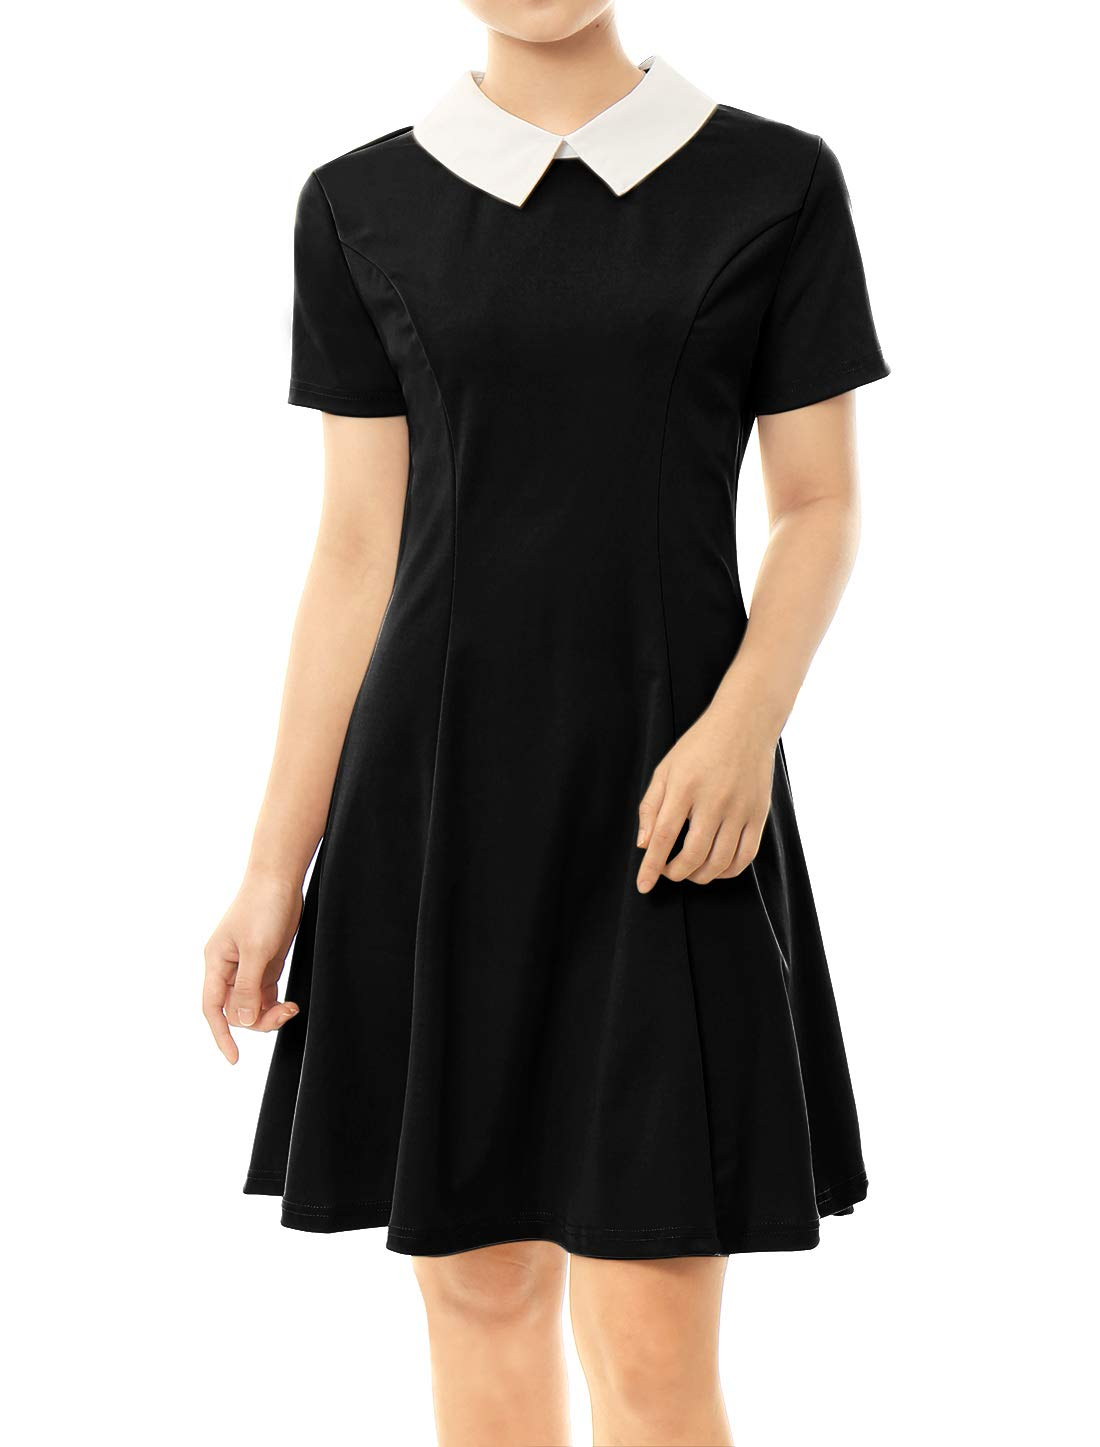 Allegra K Women's Short Sleeves Contrast Collar Fit and Flare Dress XL Black